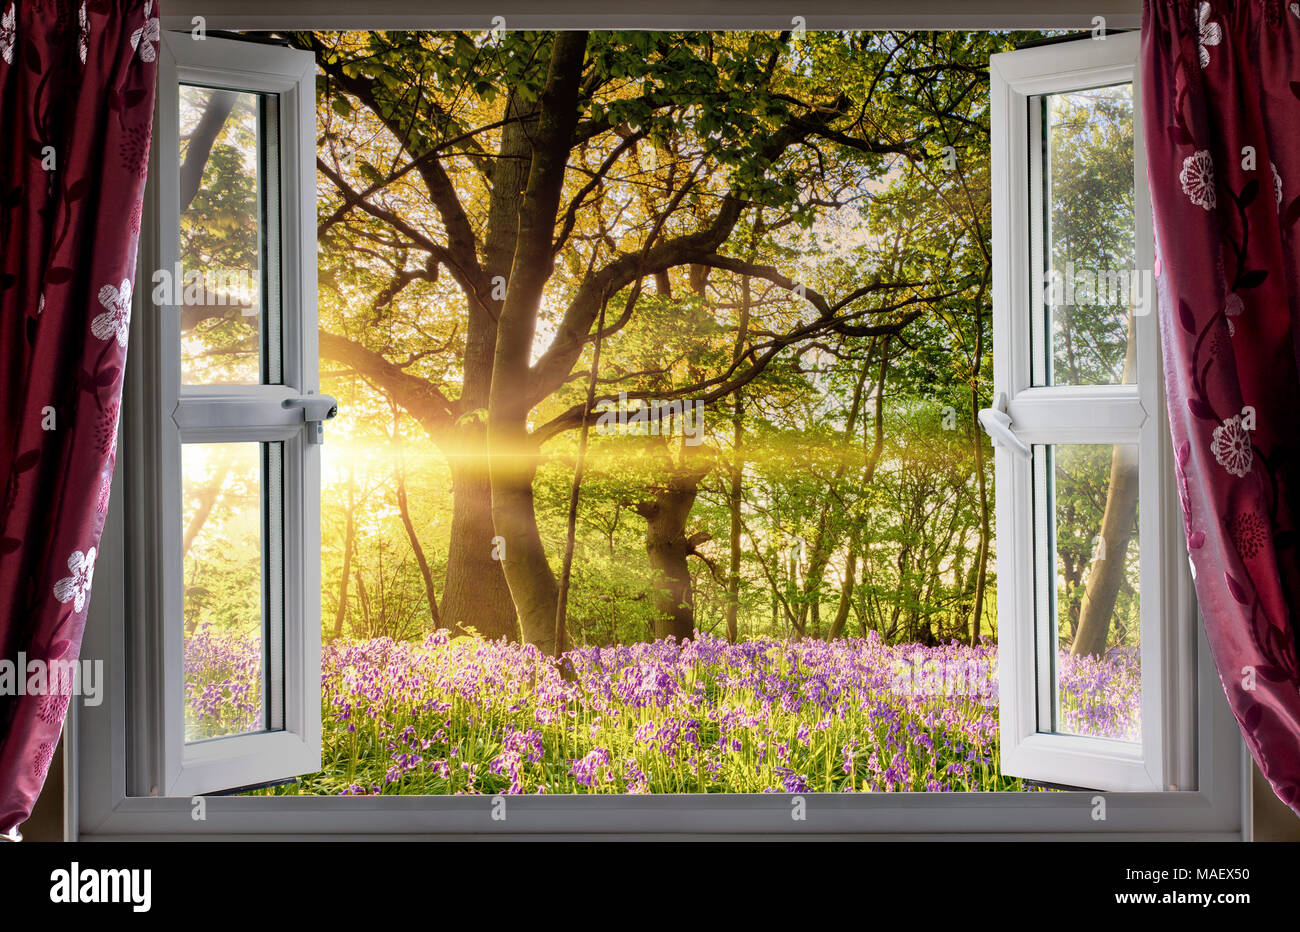 Window open onto bluebell forest woodland sunrise in the morning light. Fresh landscape view from indoors. Stock Photo